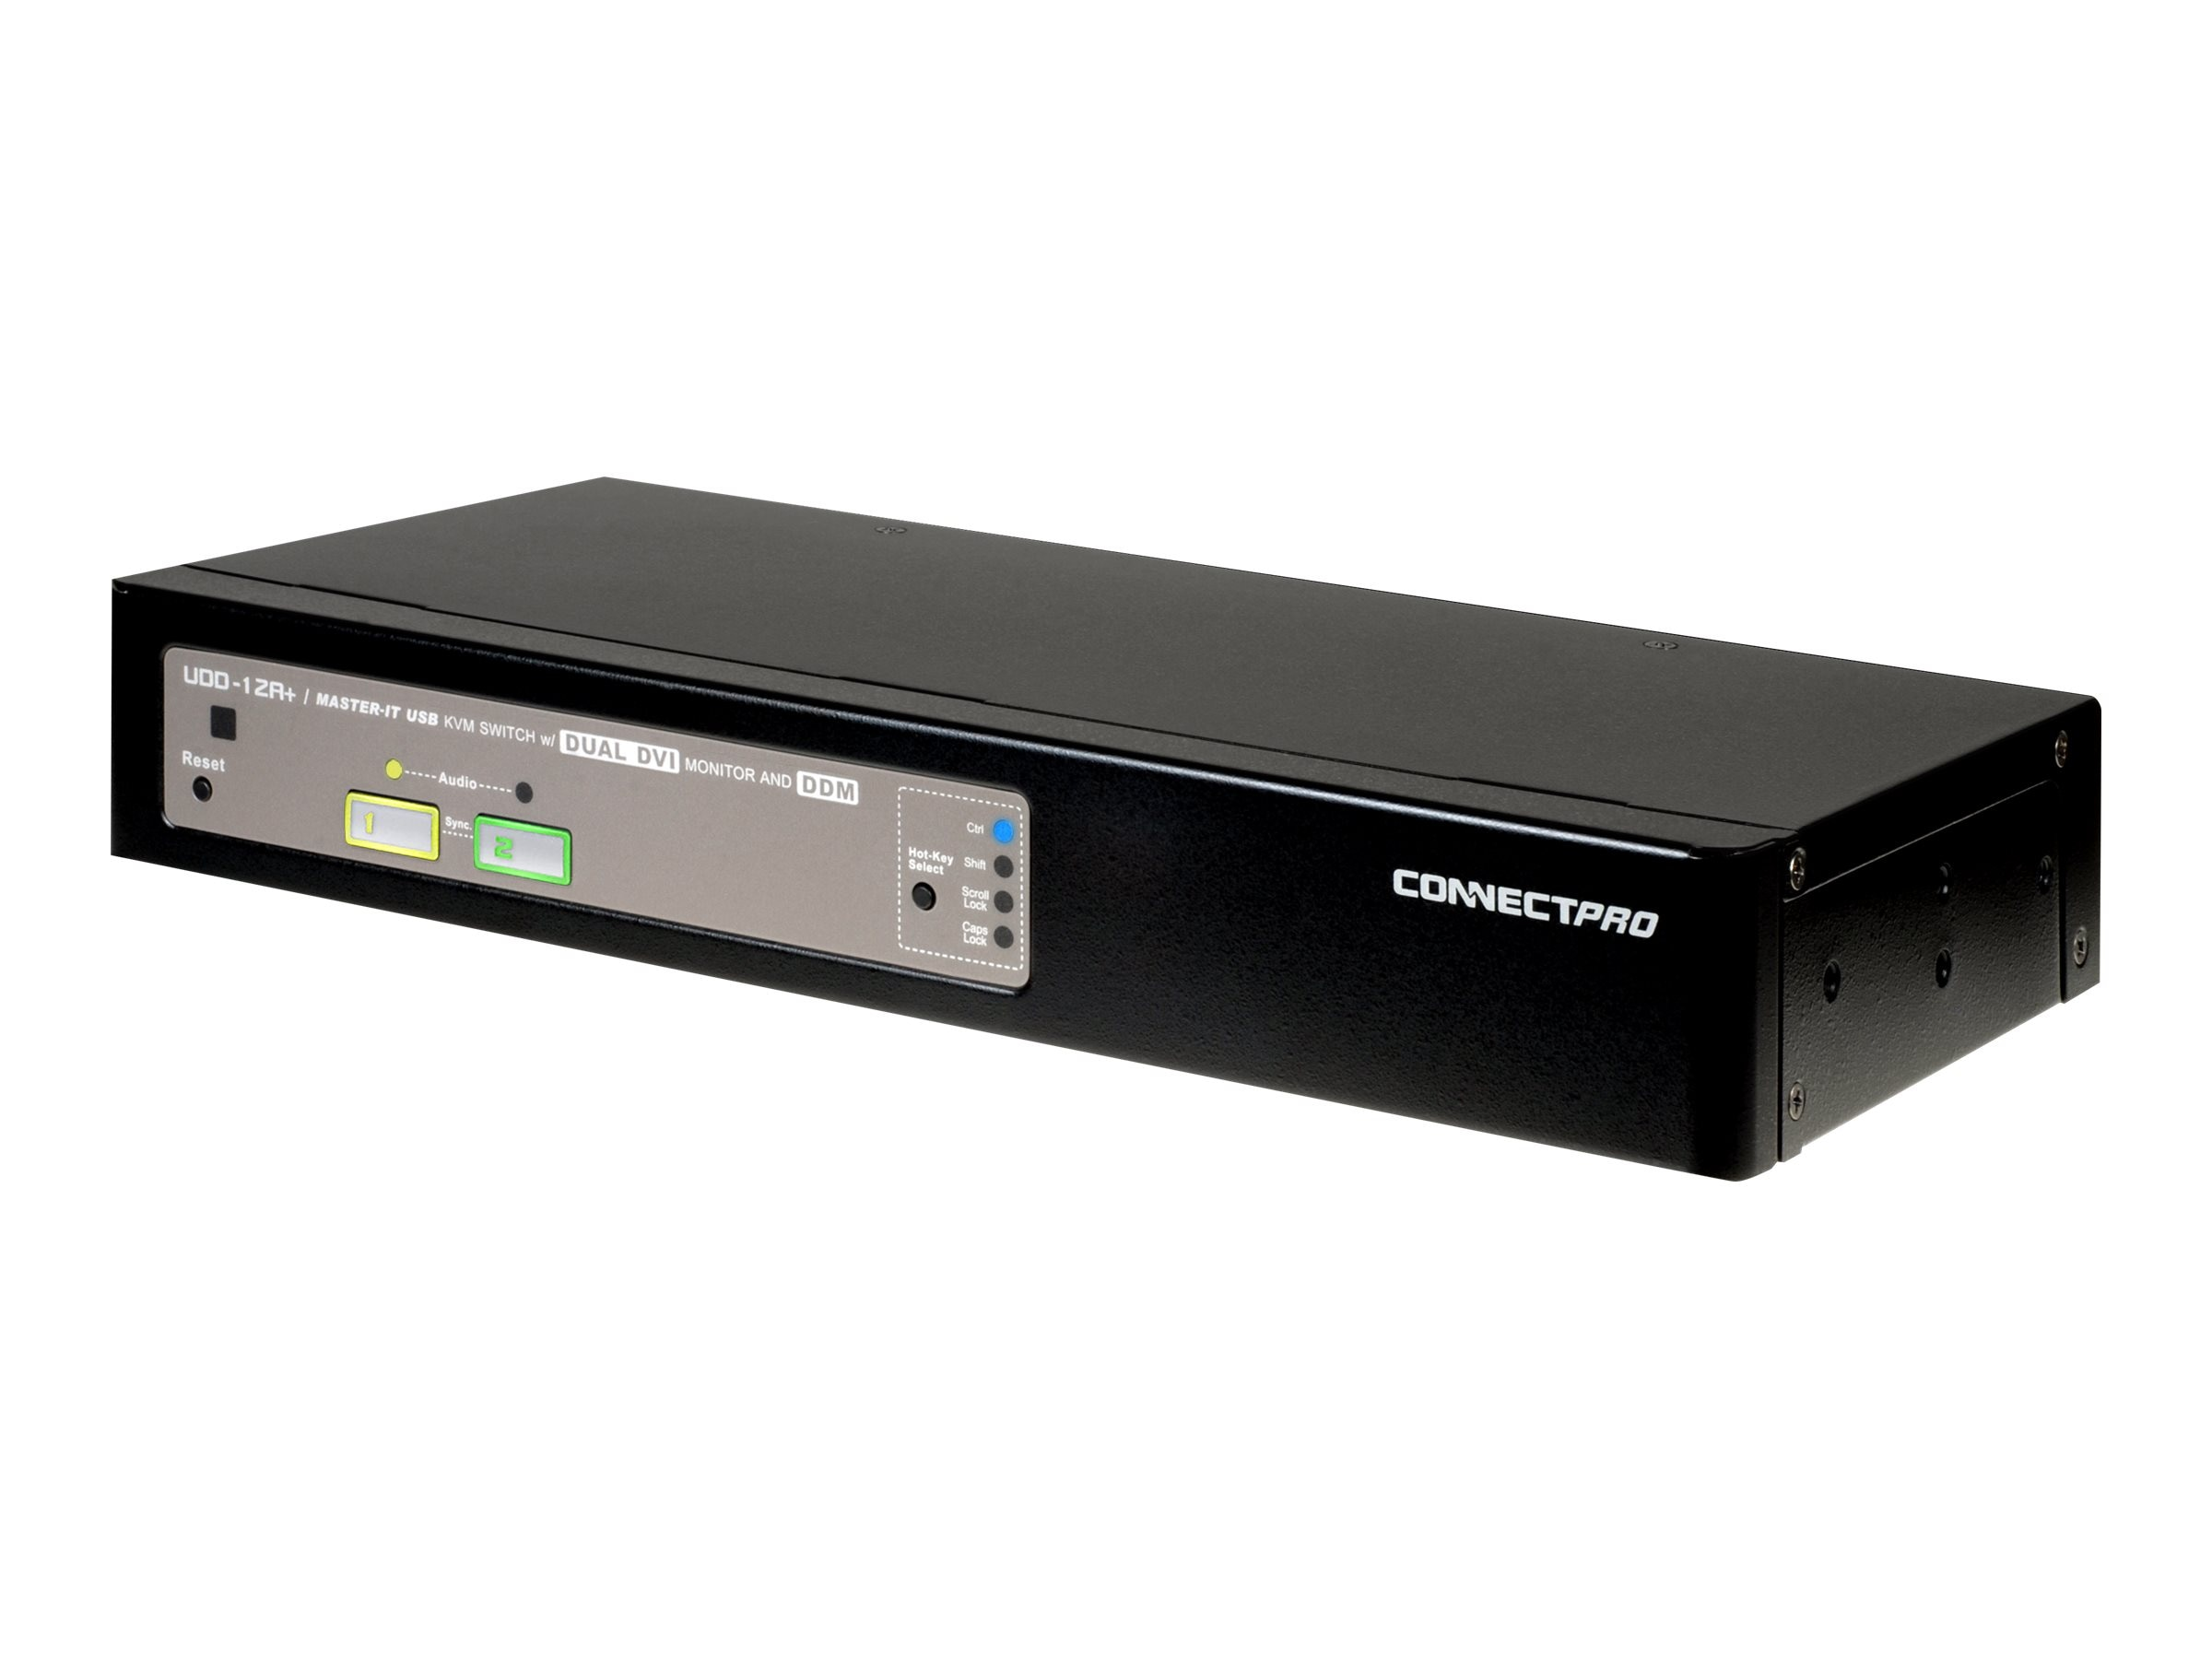 Connectpro 2-Port DVI Dual Monitor KVM Switch DDM w  Audio & Dual-Link DVI